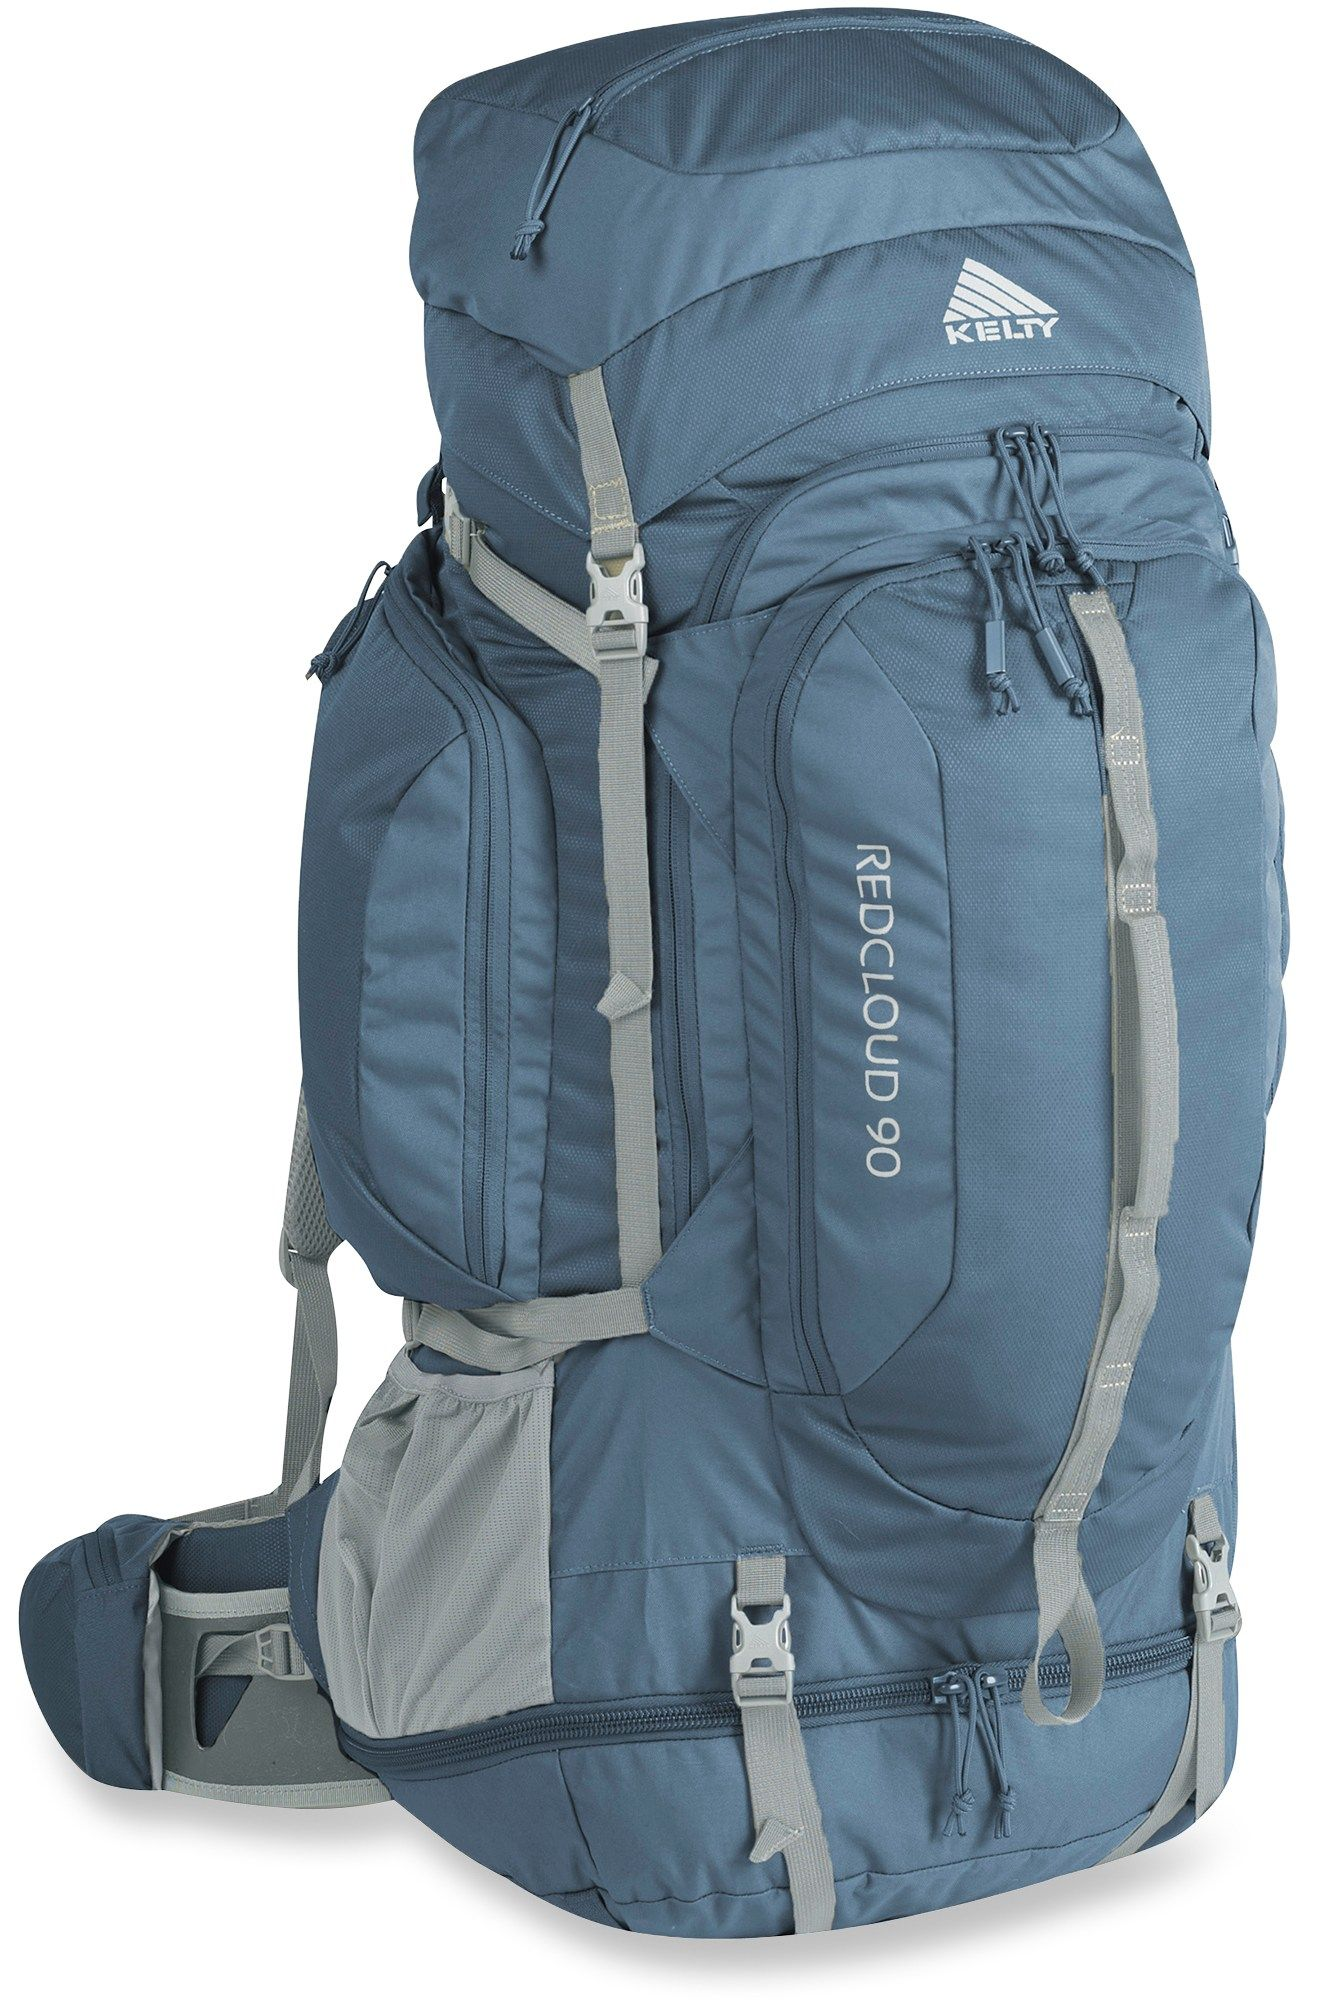 I want a backpacking backpack. Minimum of 65 liters up to a 90 like ...